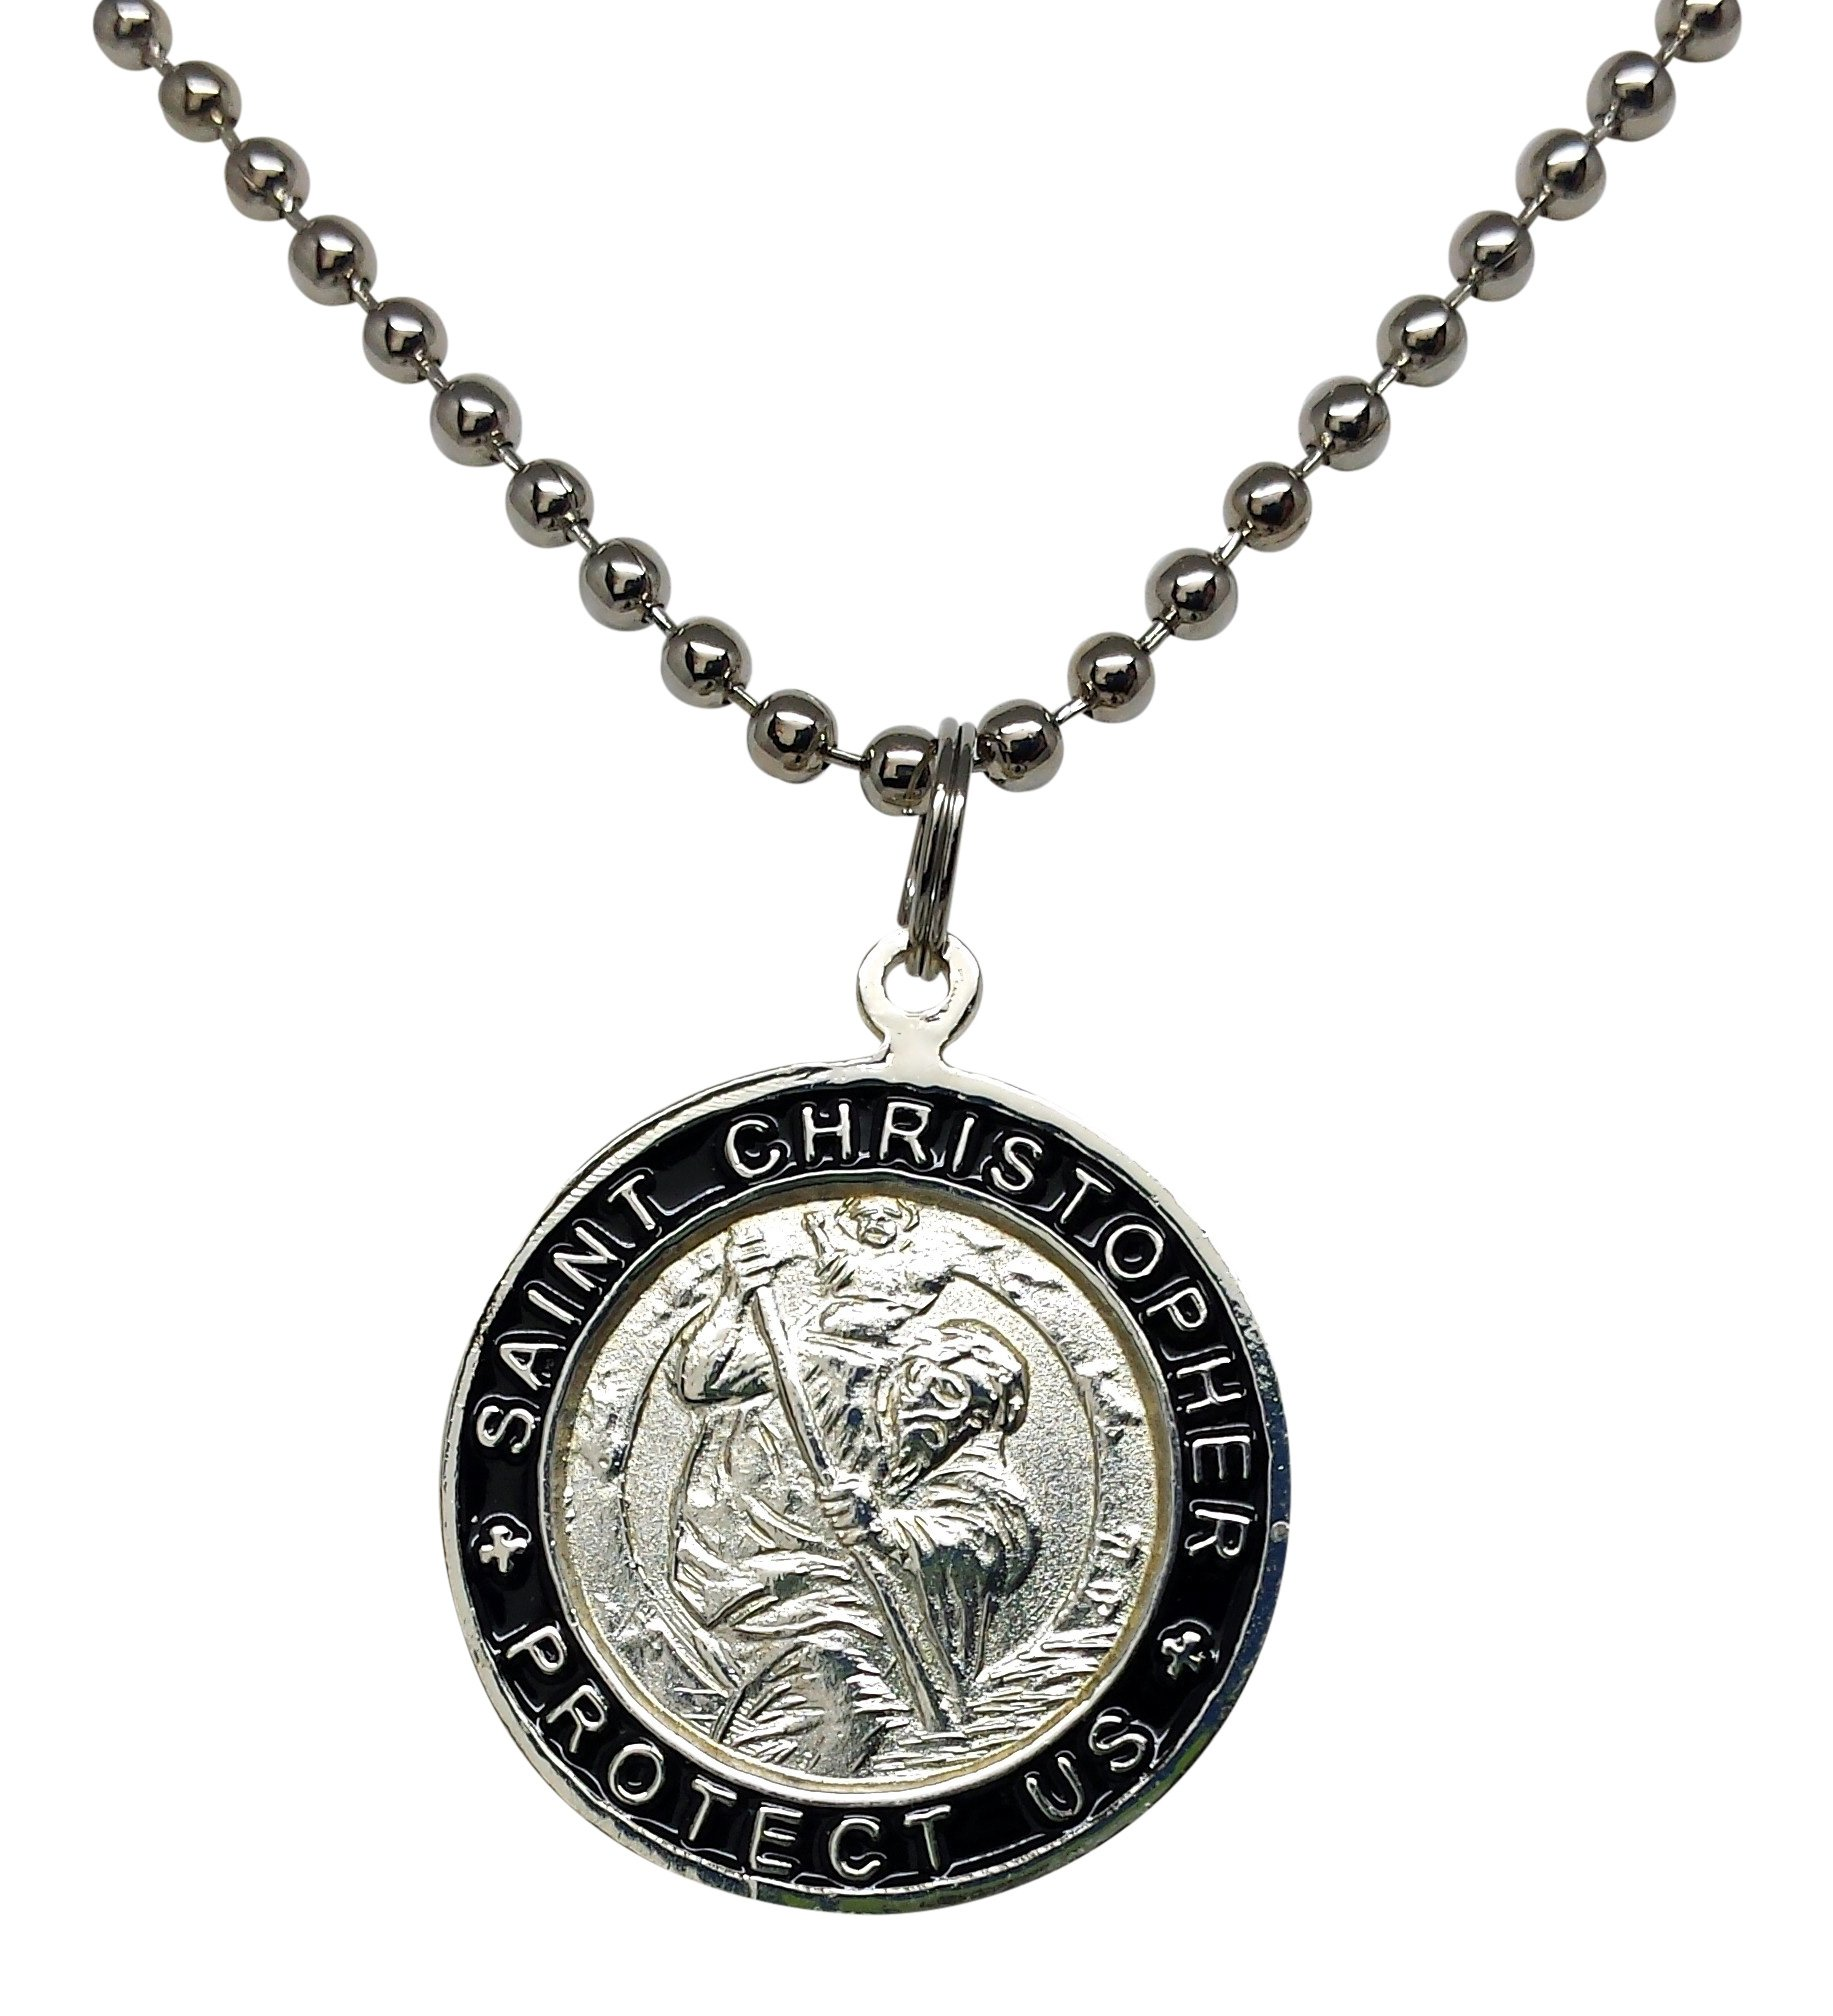 St. Christopher Surf Necklace, Large Pendant, Silvertone Color with Black Rim, 23 Inch Long Ball Chain